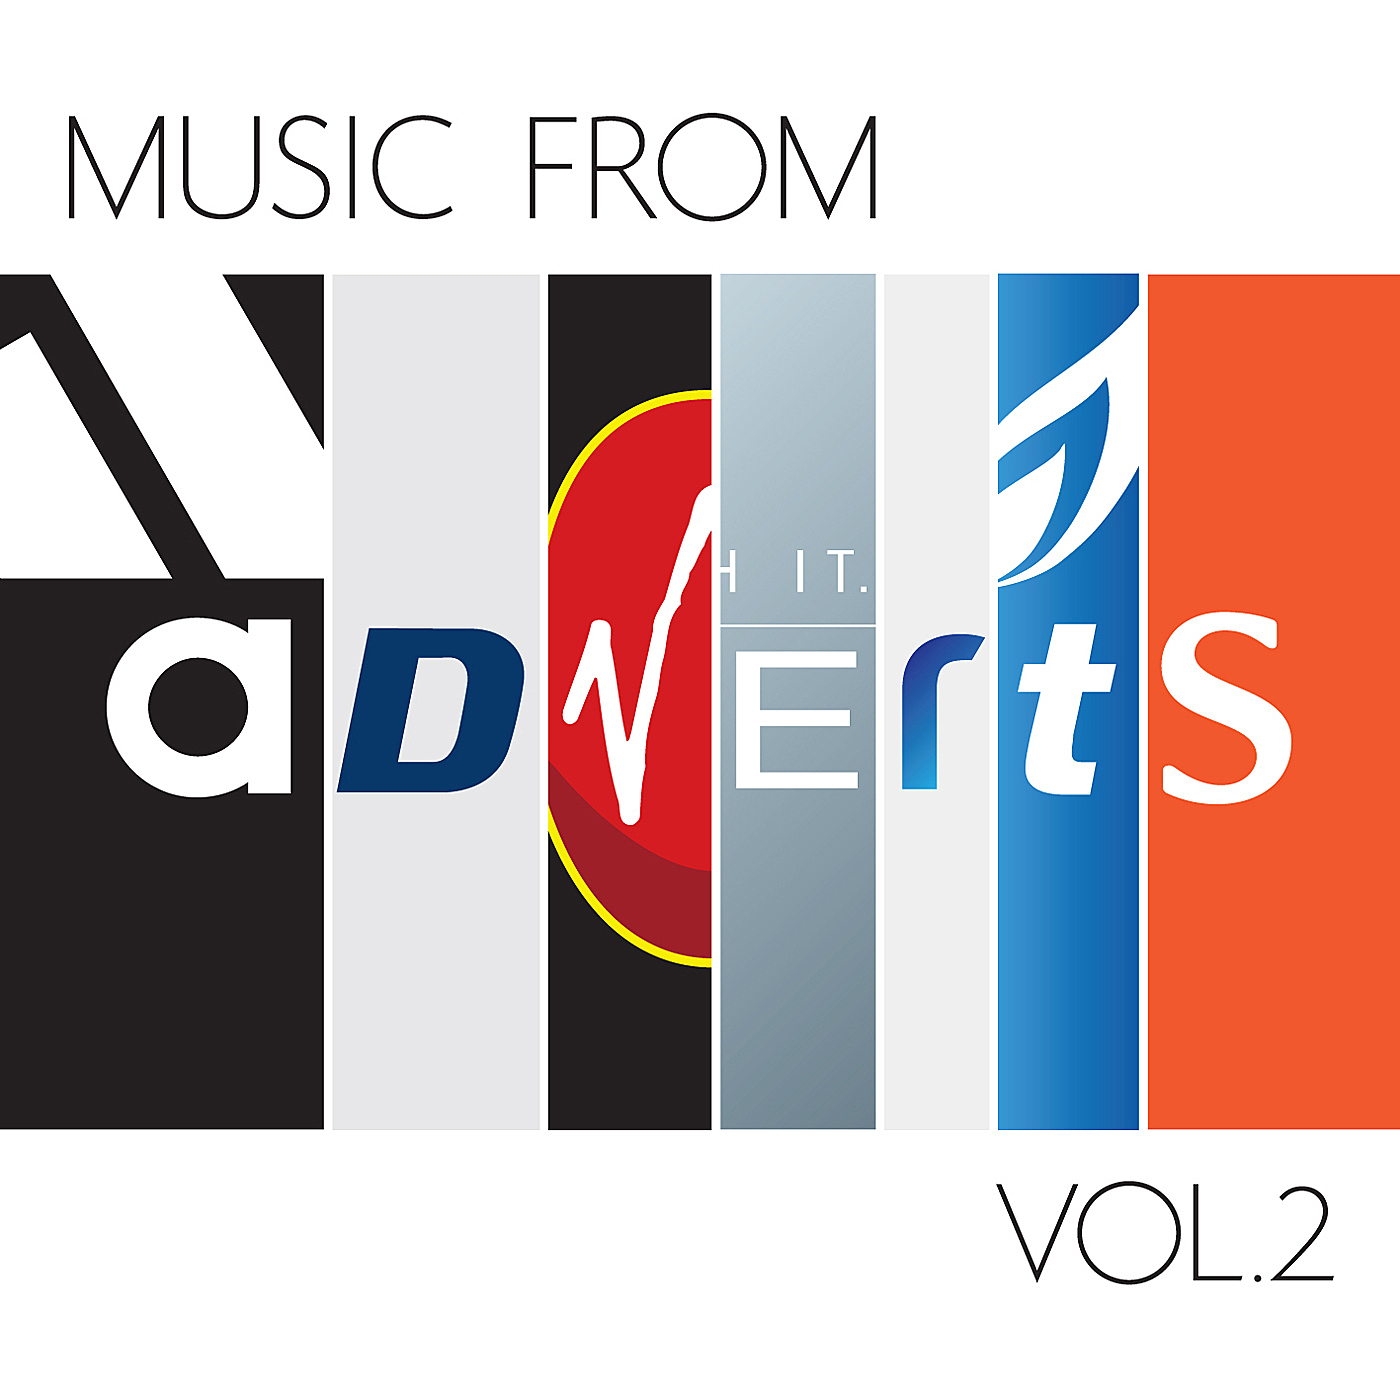 Music From Adverts Vol. 2